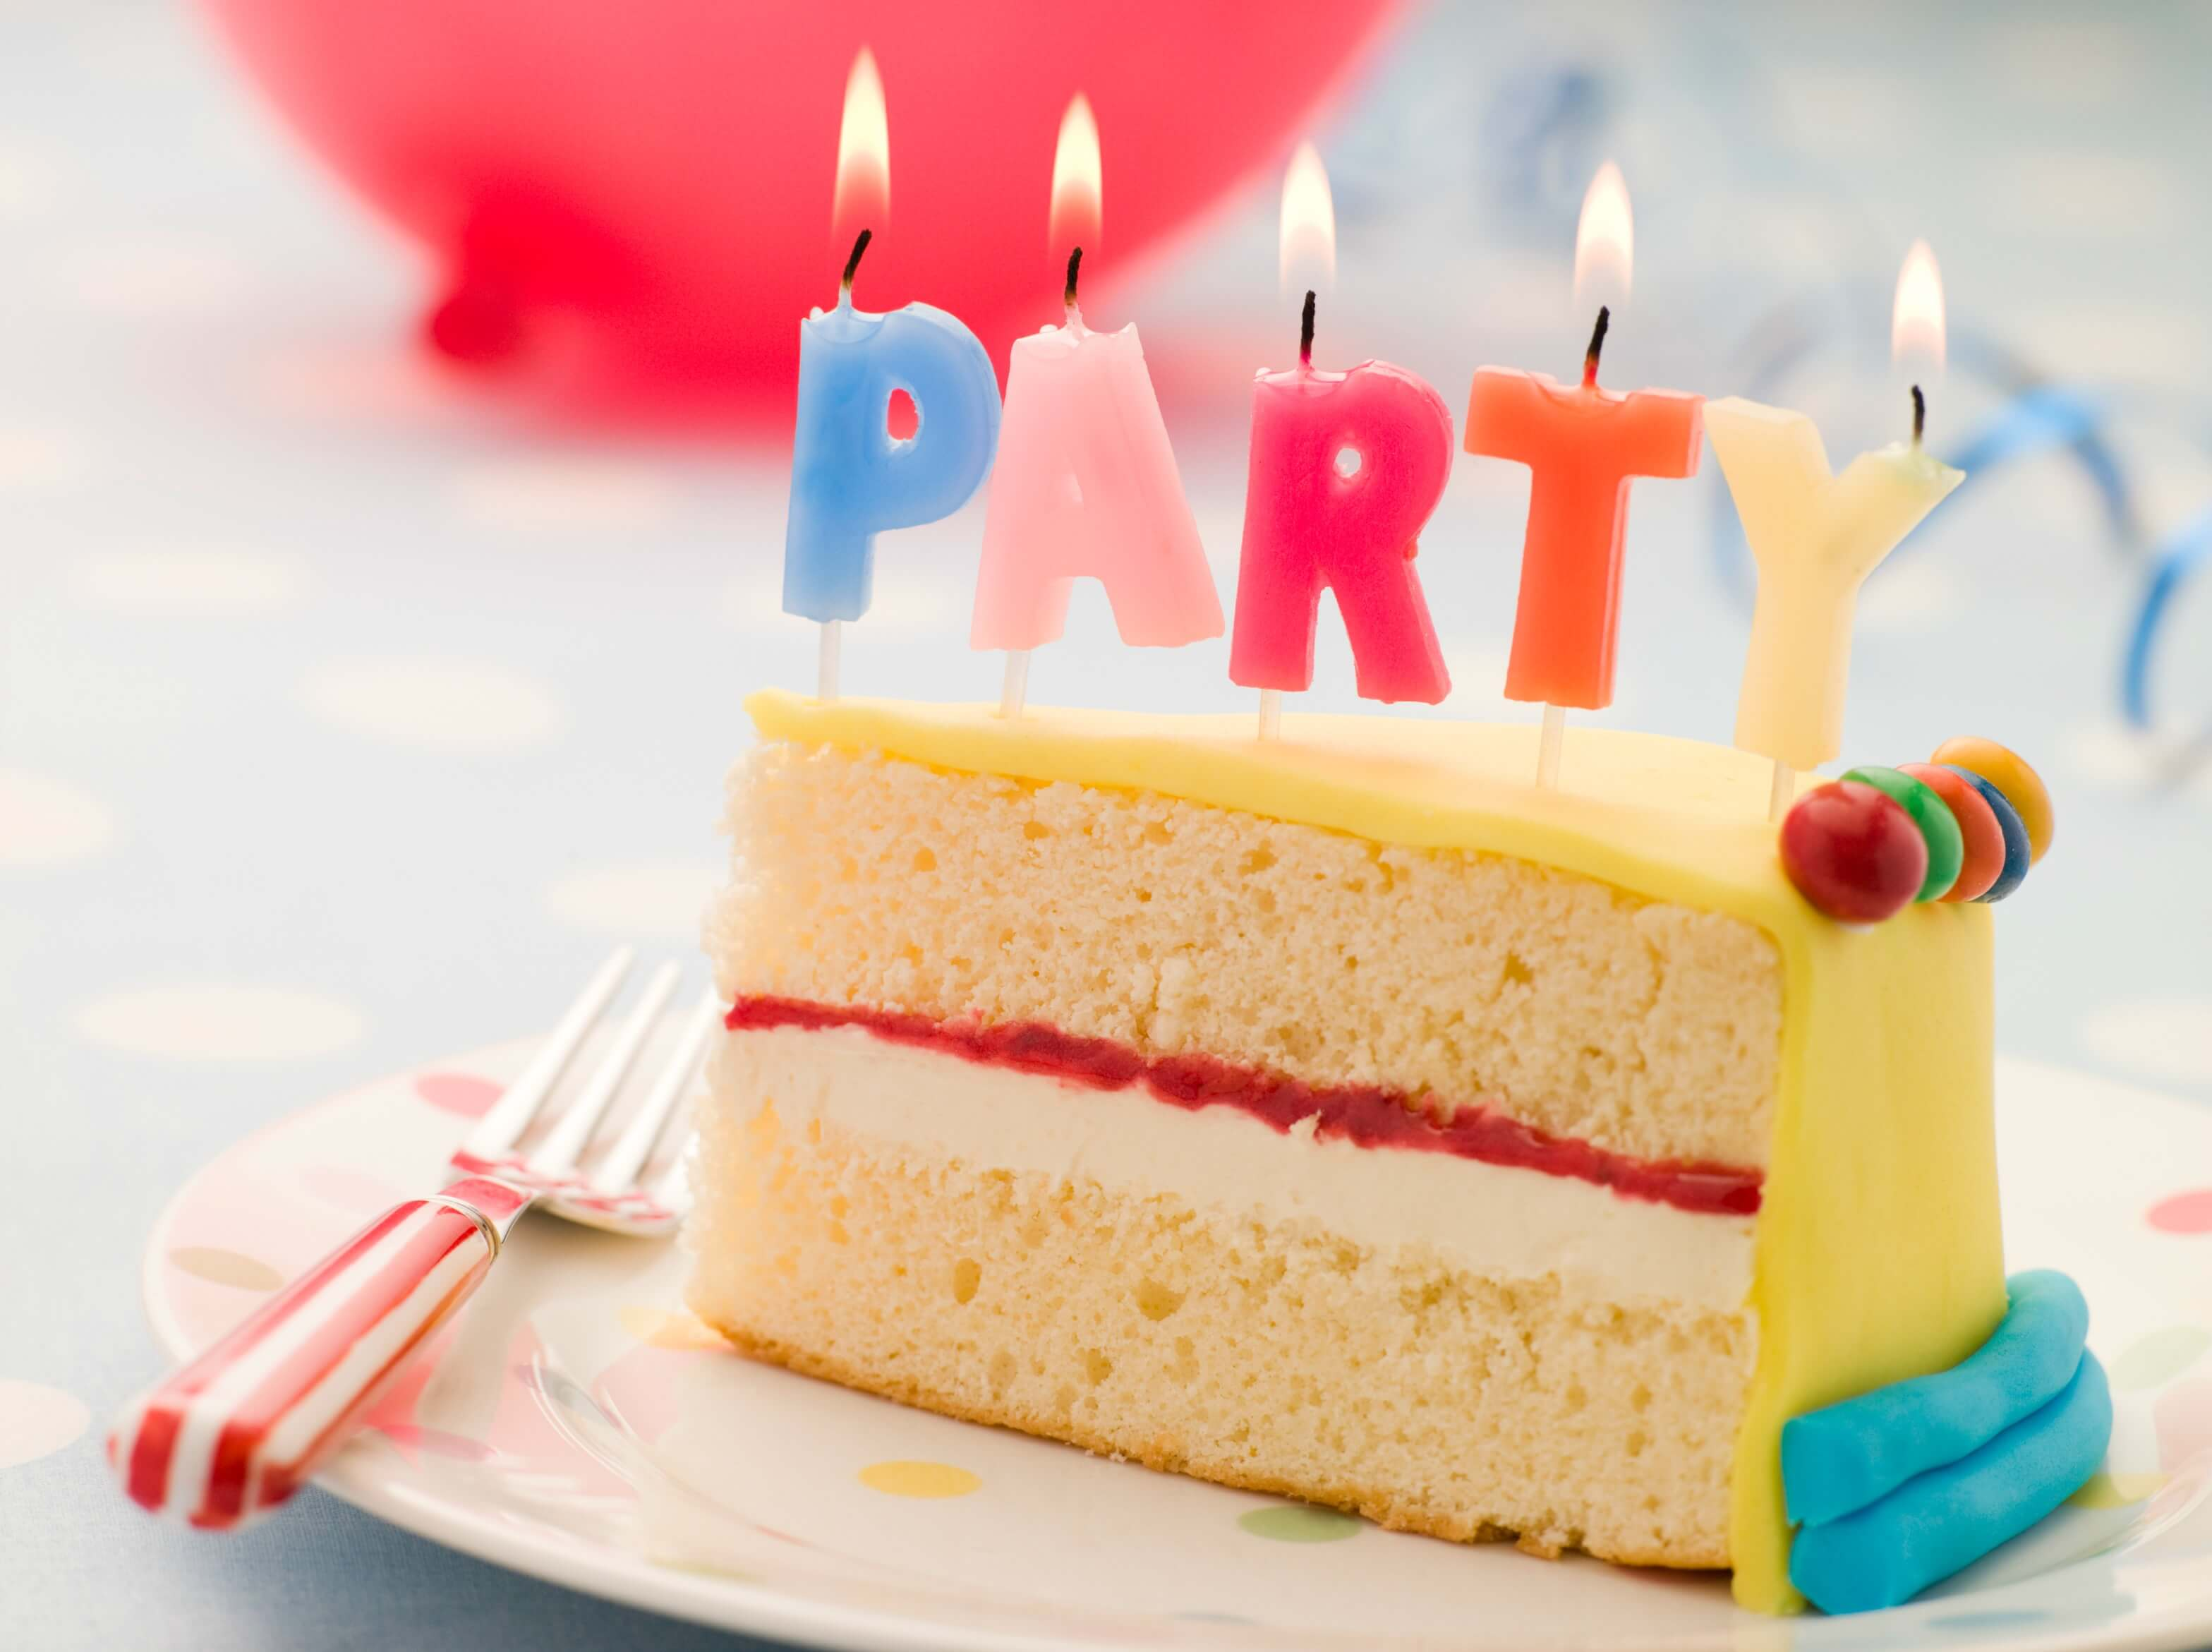 birthday gifts for classmates - party cake with candles spelling out the word party